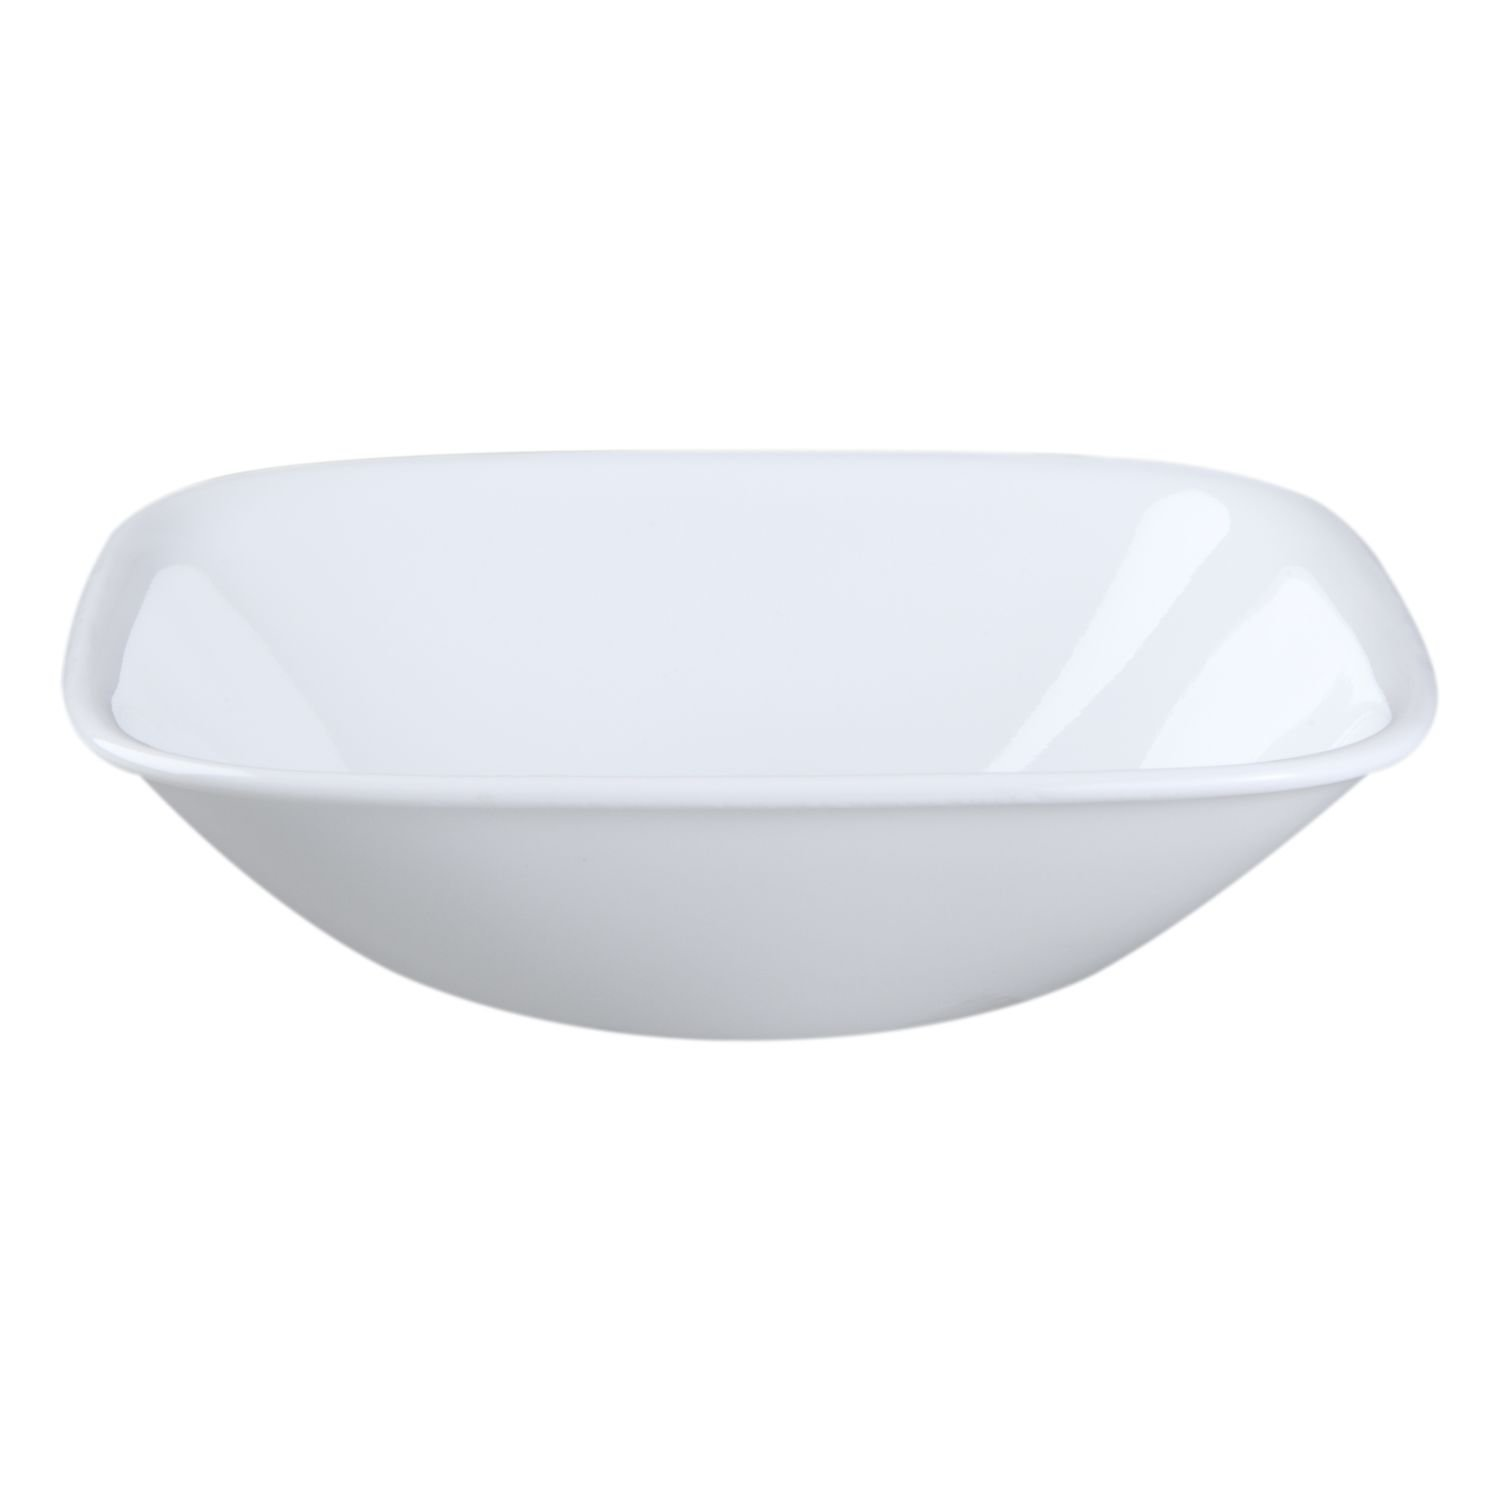 Corelle Square Pure White 10 Ounce Soup/Cereal Bowl (Set of 4) by Corelle Coordinates B016CRFOZK  4